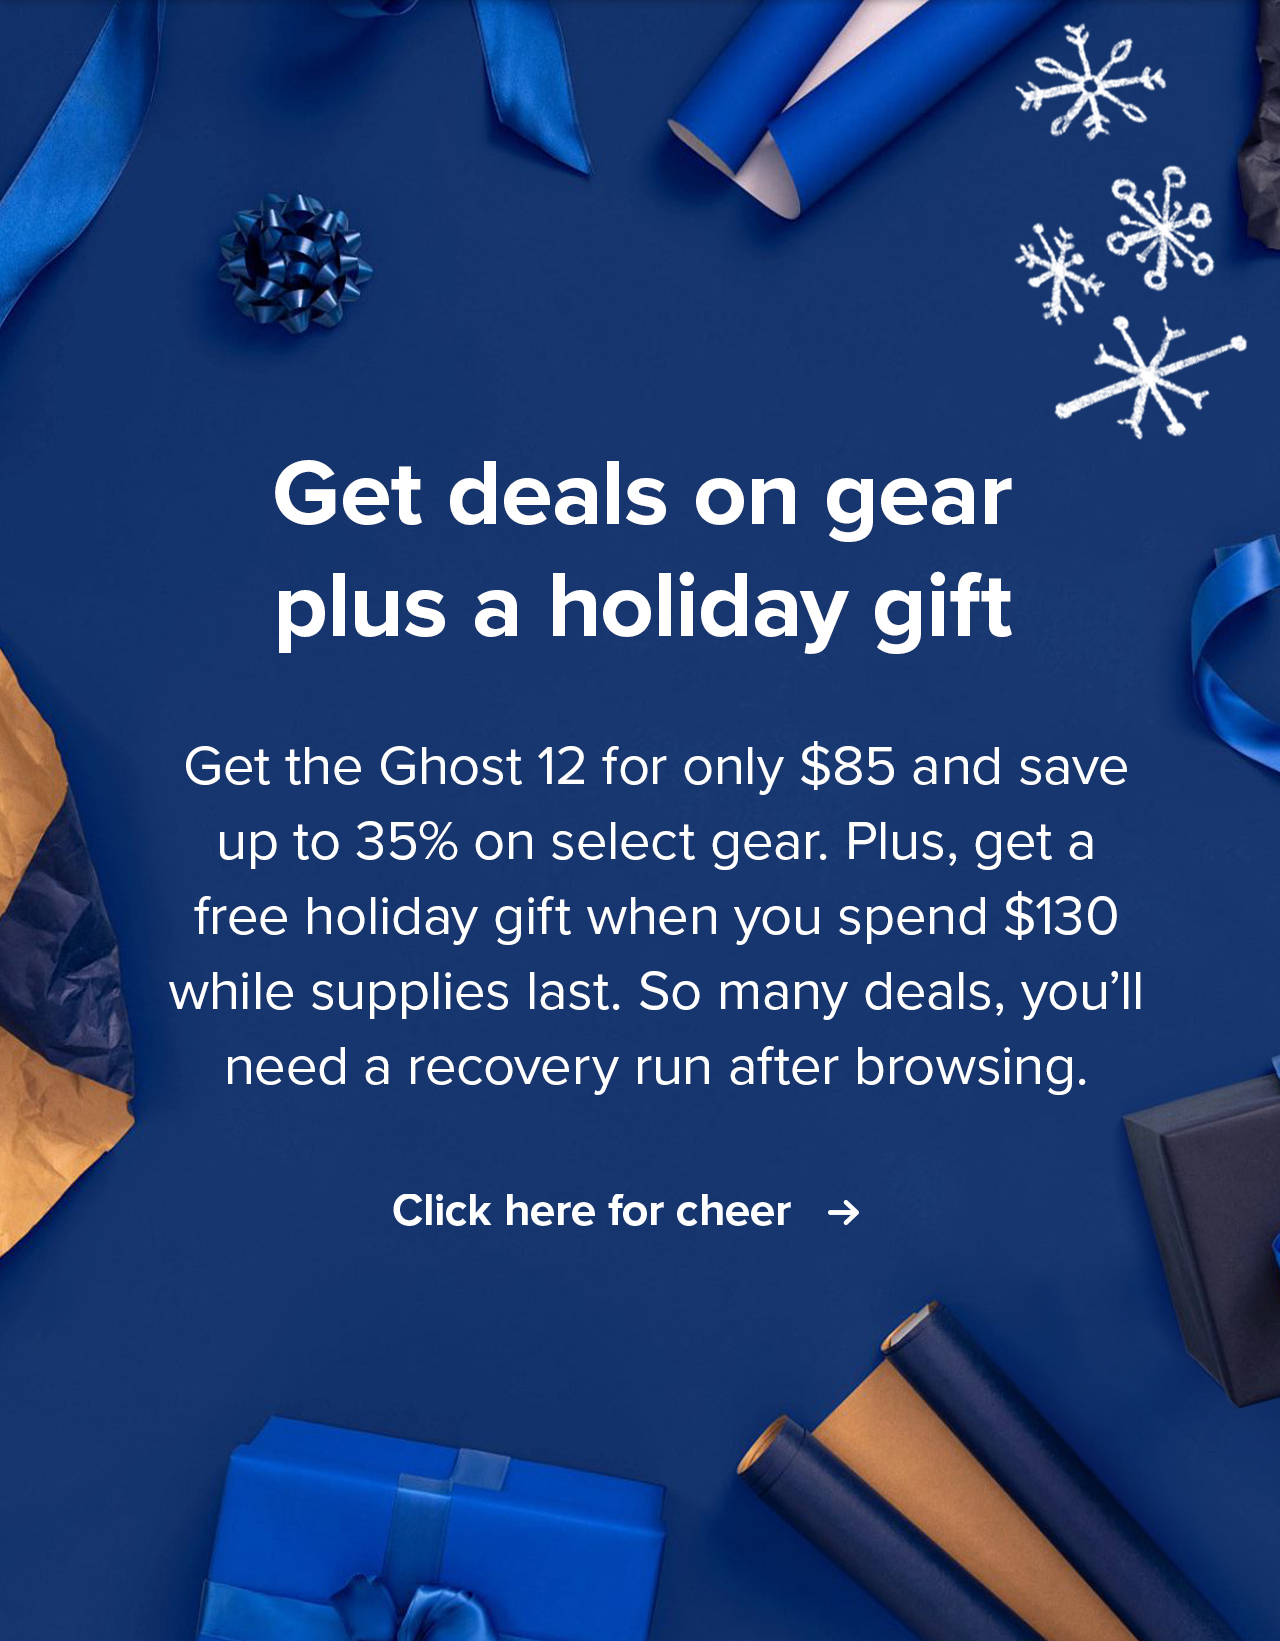 Get deals on gear plus a holiday gift   Get the Ghost 12 for only $85 and save up to 35% on select gear. Plus, get a free holiday gift when you spend $130 while supplies last. So many deals, you'll need a recovery run after browsing.